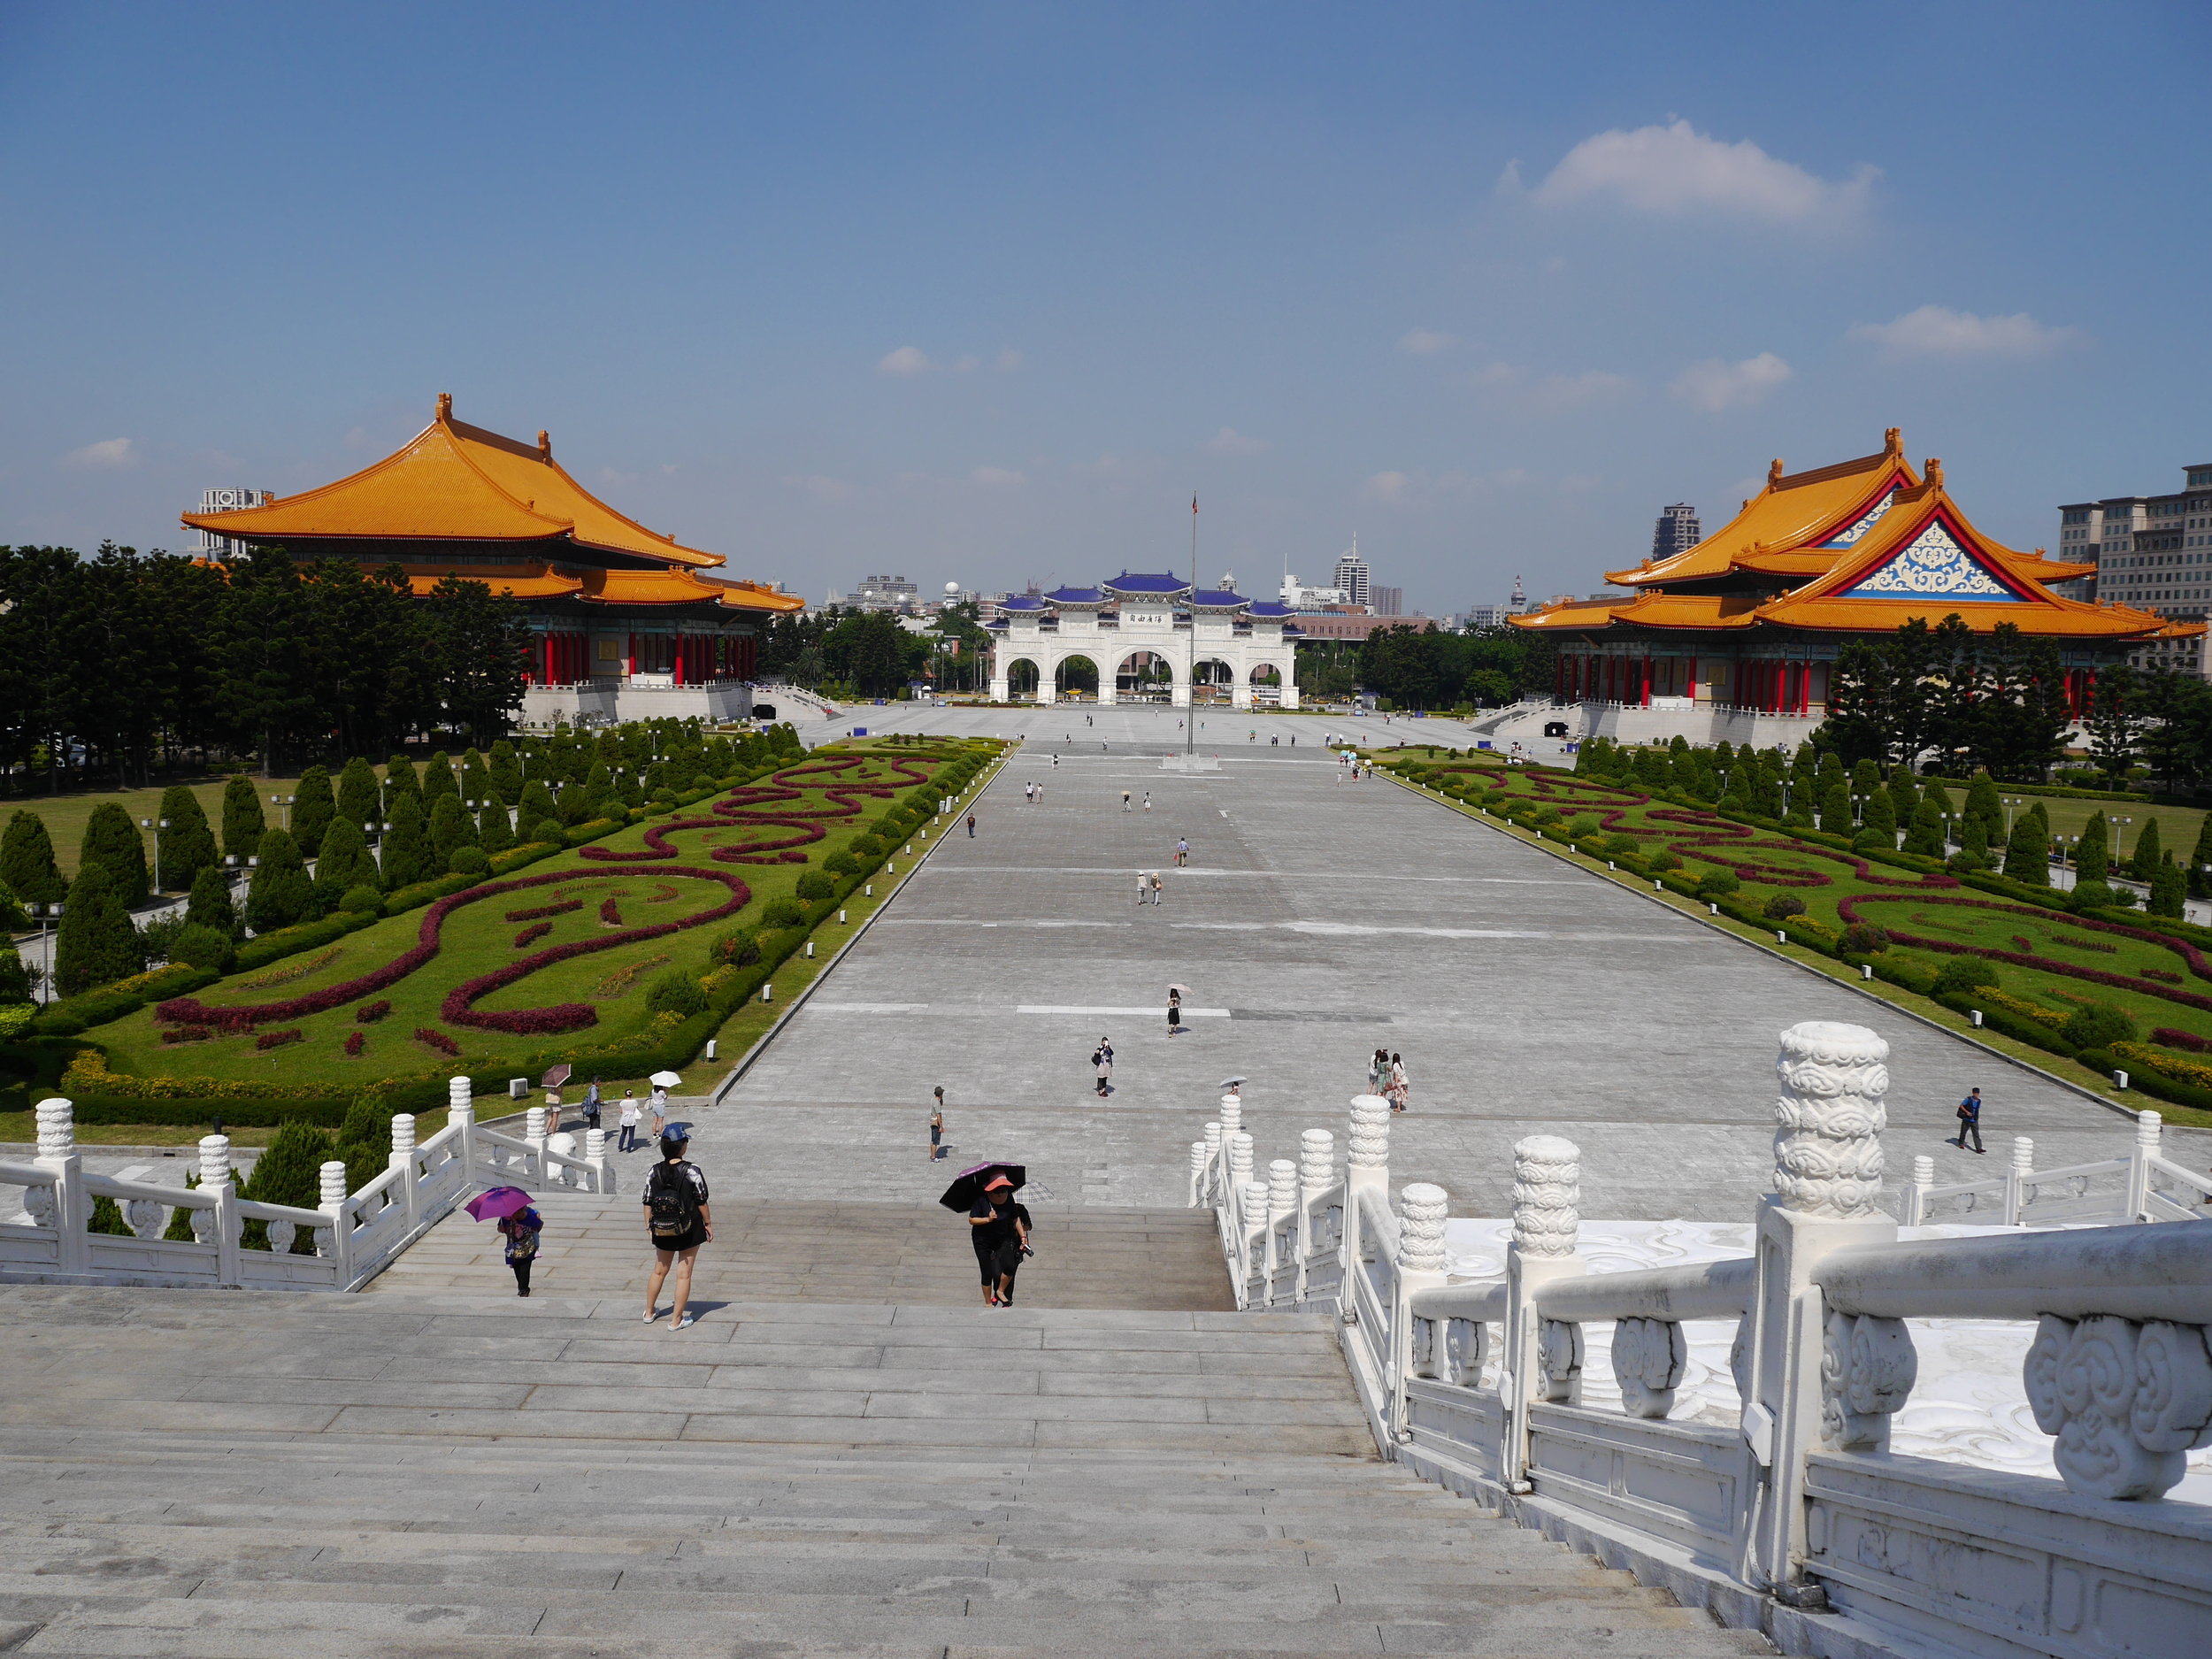 The National Theater (left), main gate, and National Concert Hall (right). Beautiful landscaping in the foreground.